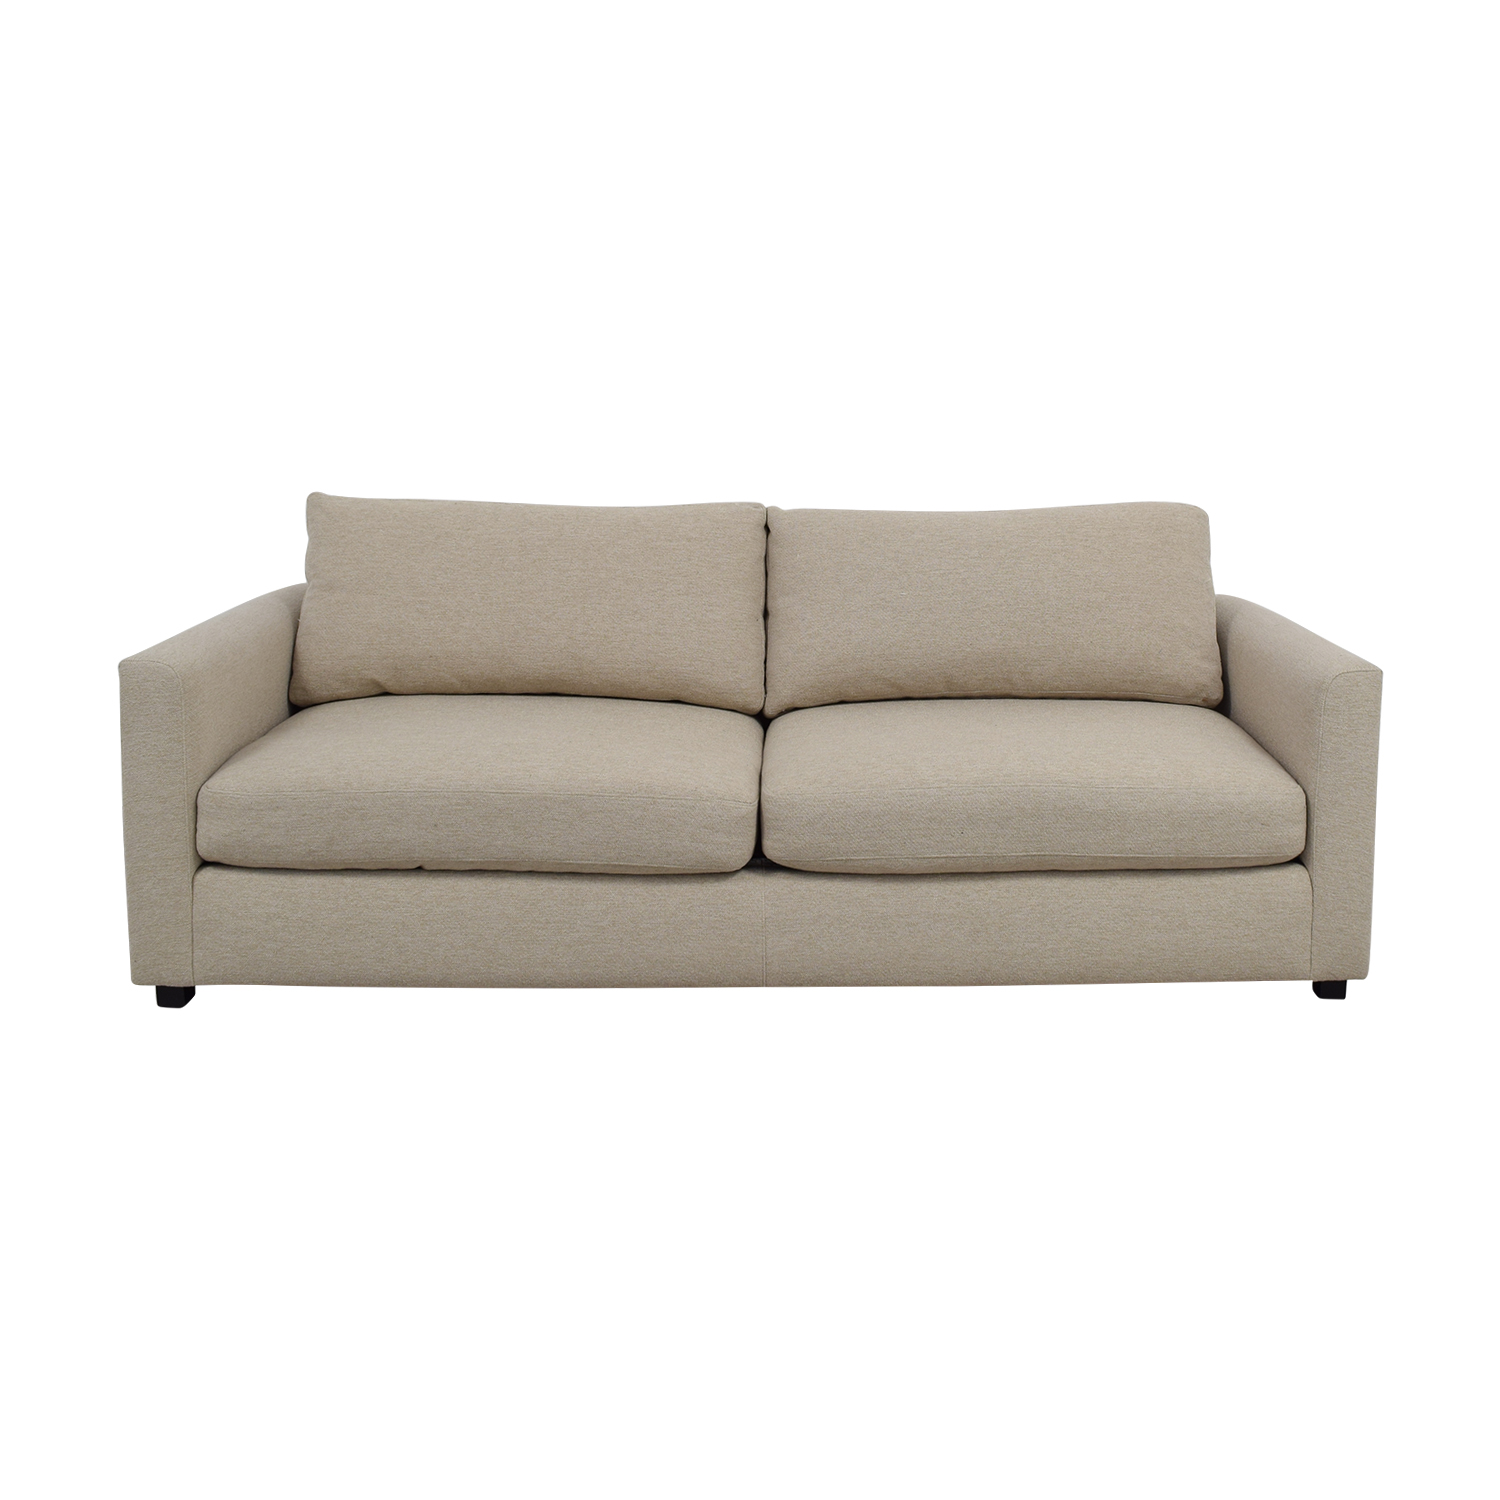 Room & Board Room & Board Morrison Beige Two-Cushion Couch price